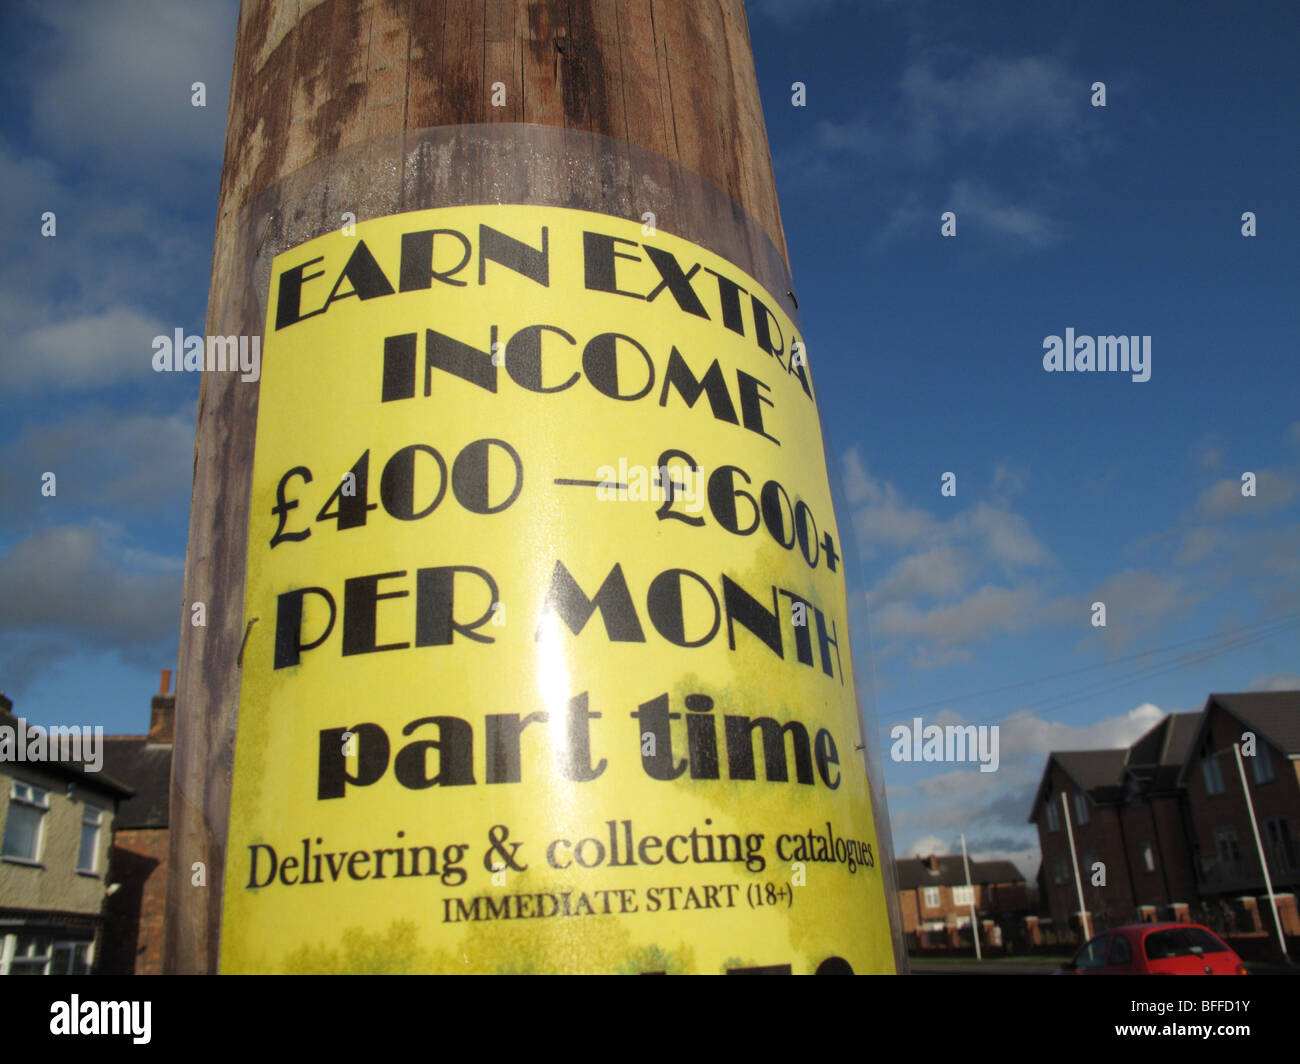 An earn extra income sign at the roadside in a U.K. city. - Stock Image